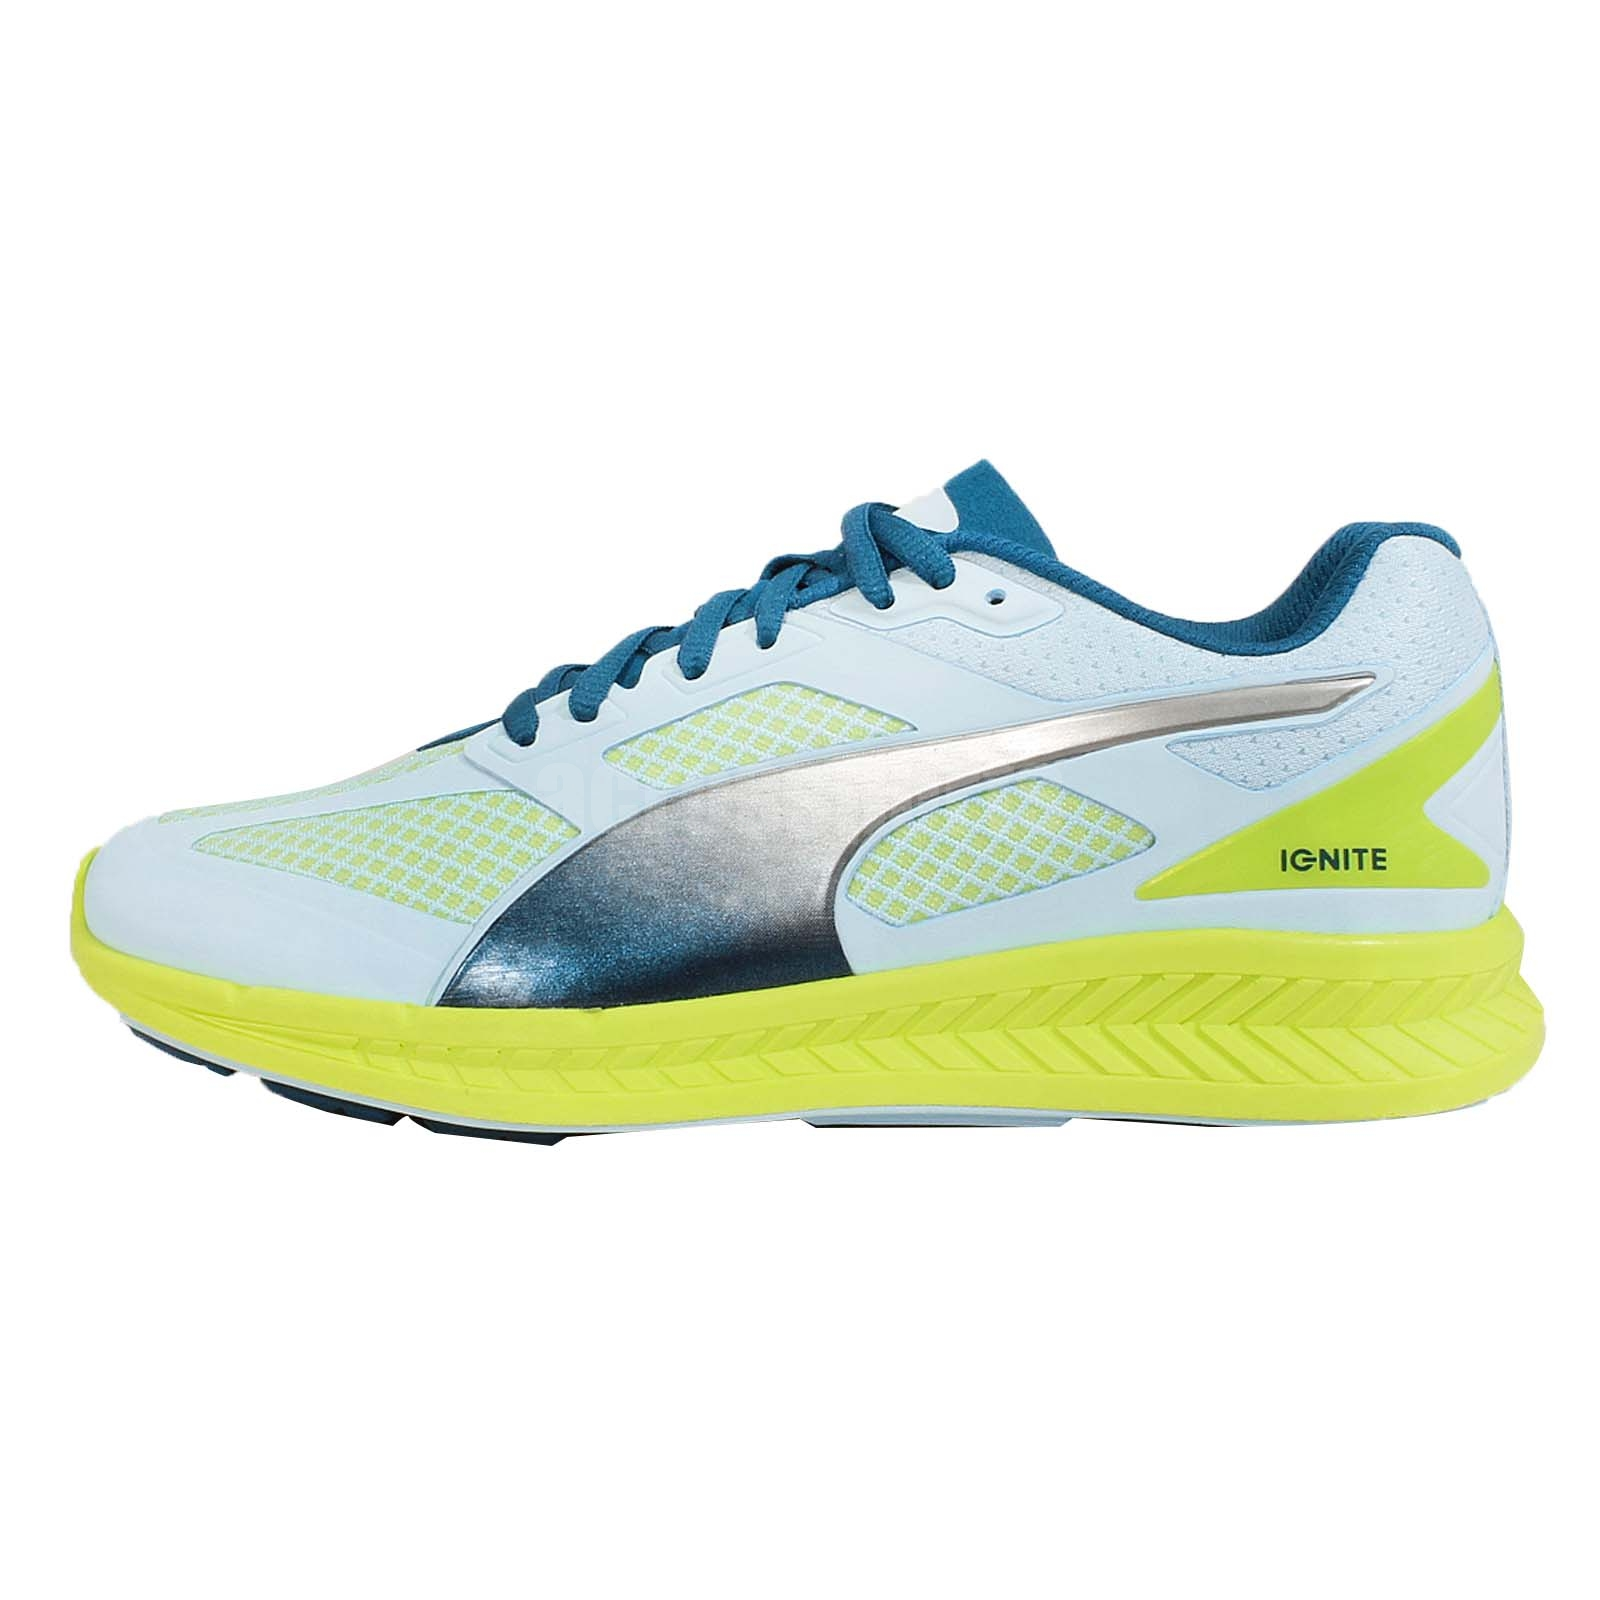 5275bc87894 Puma Ignite Mesh Wns Blue Green Womens Racing Running Shoes Sneakers  18858502